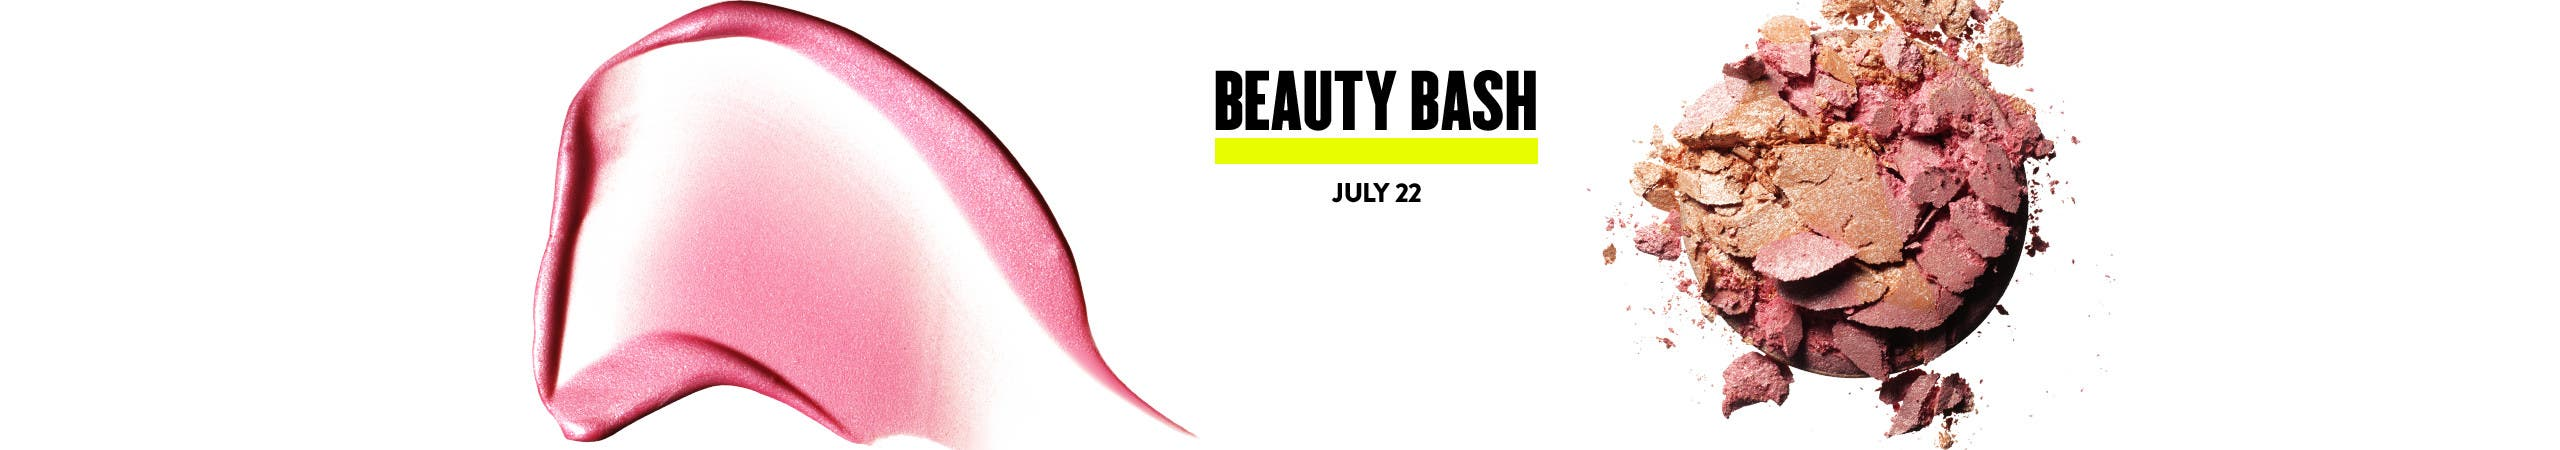 Anniversary Sale Beauty Bash.